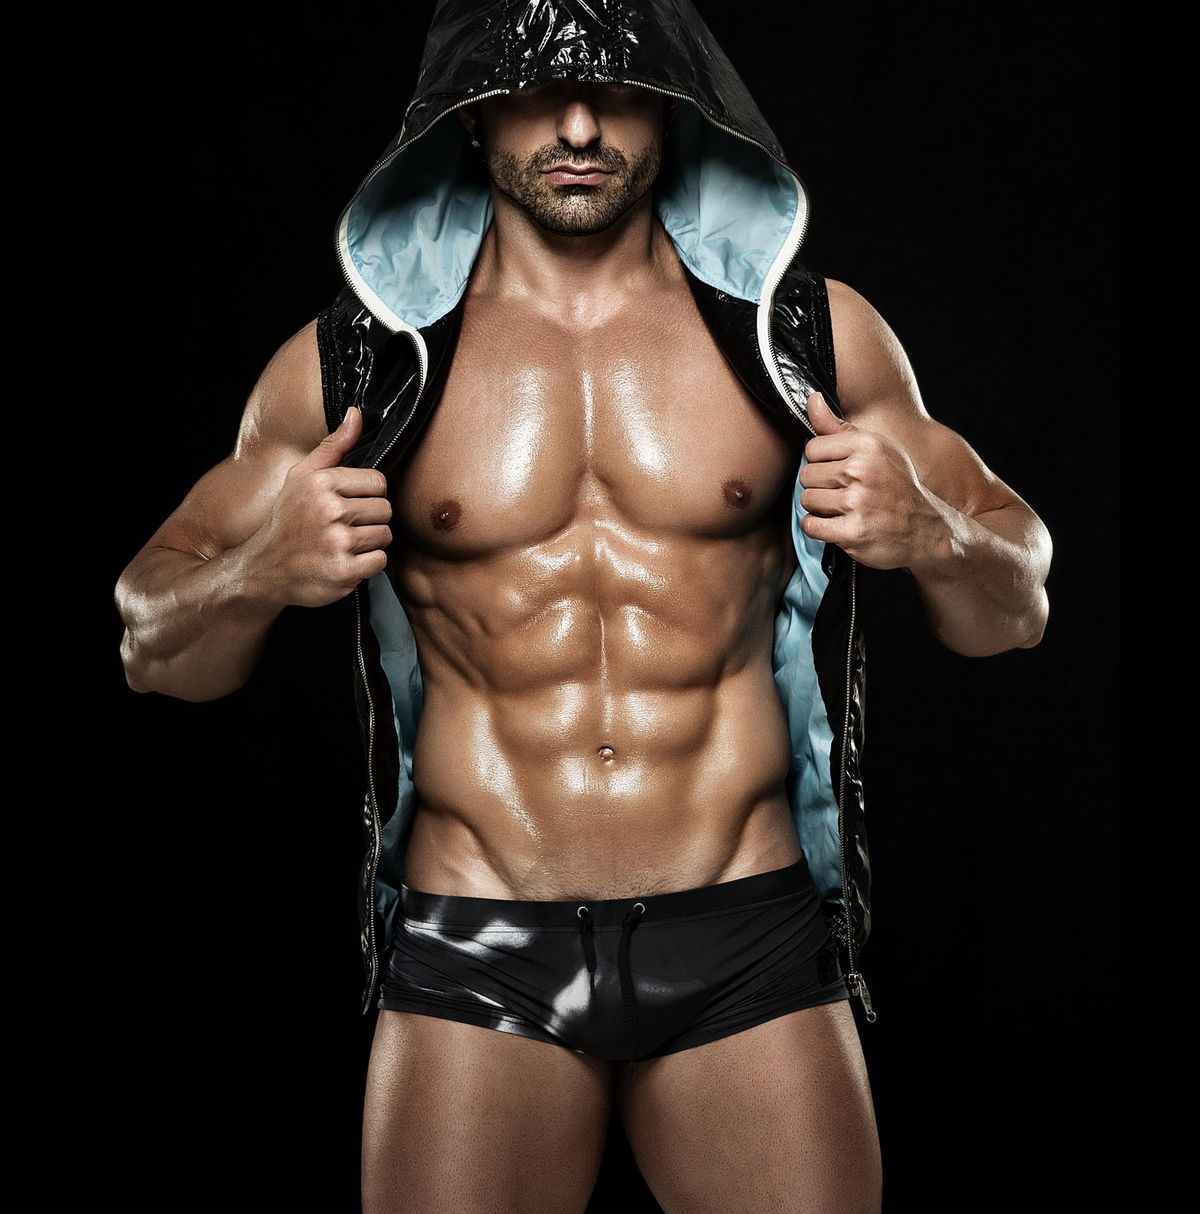 Hunk-O-Mania Male Revue Show - New Orleans French Quarter | Event in New Orleans | AllEvents.in